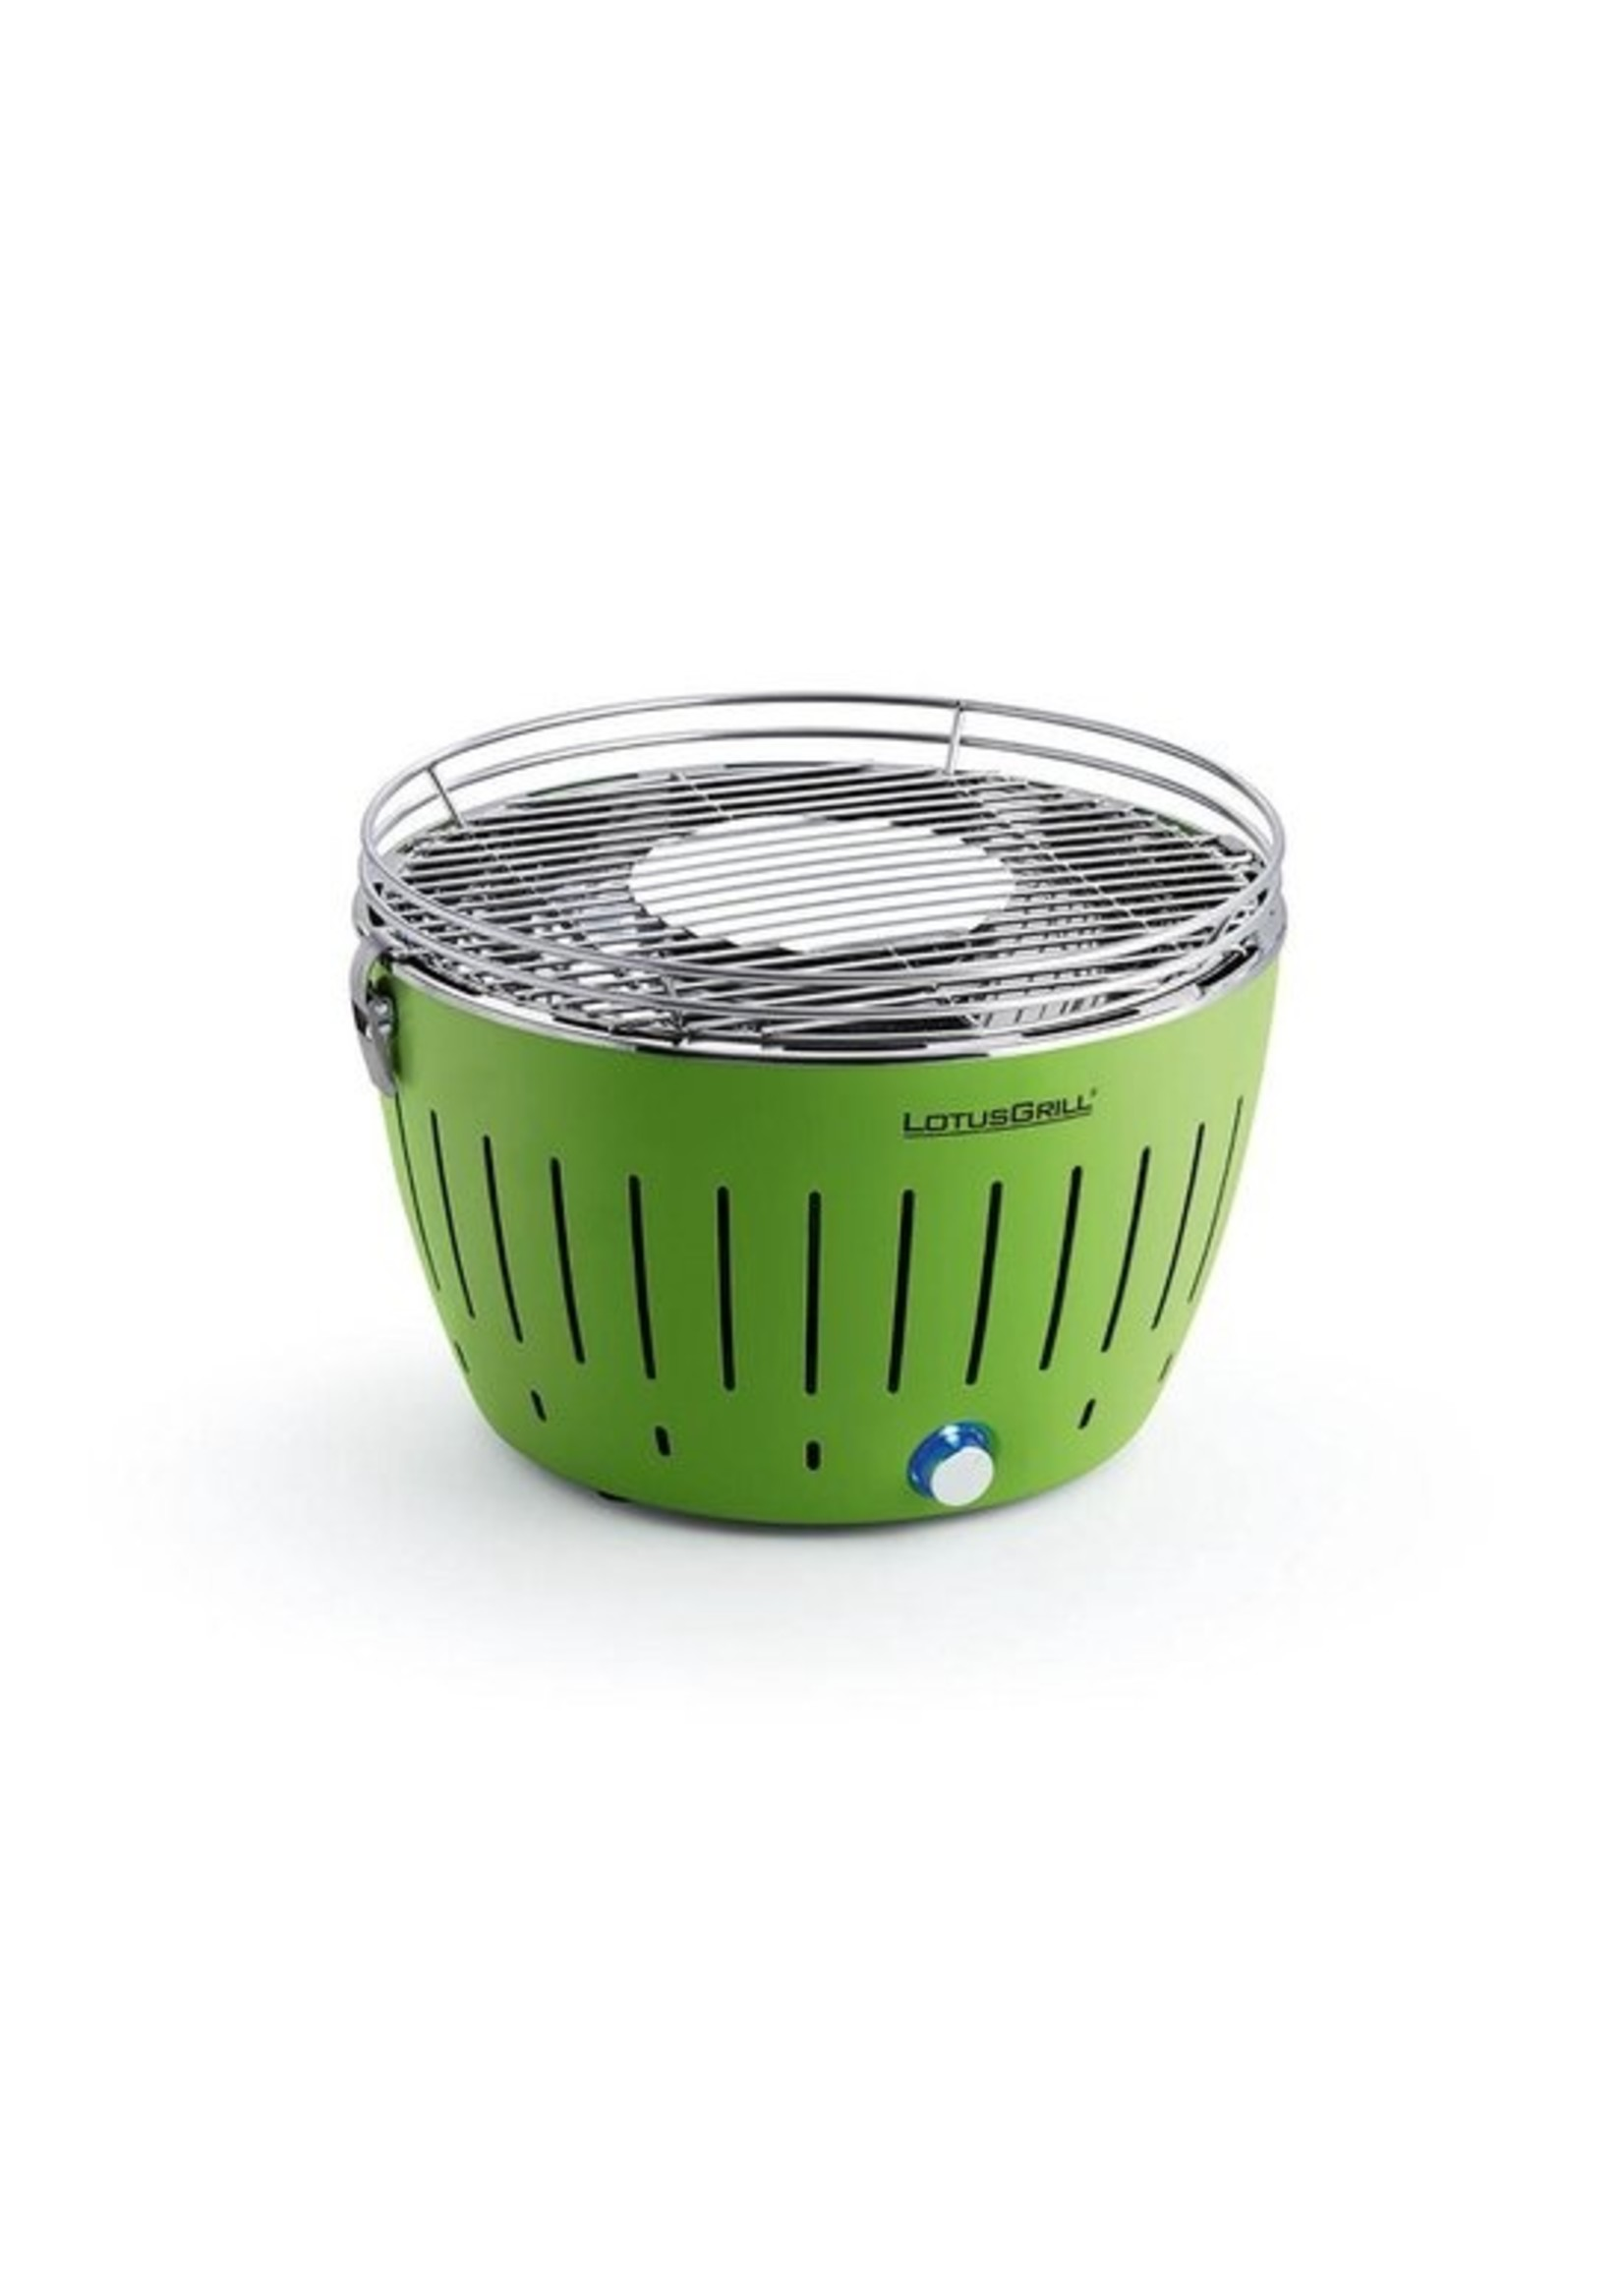 LotusGrill LotusGrill Classic Hybrid Tafelbarbecue - �0mm - Groen